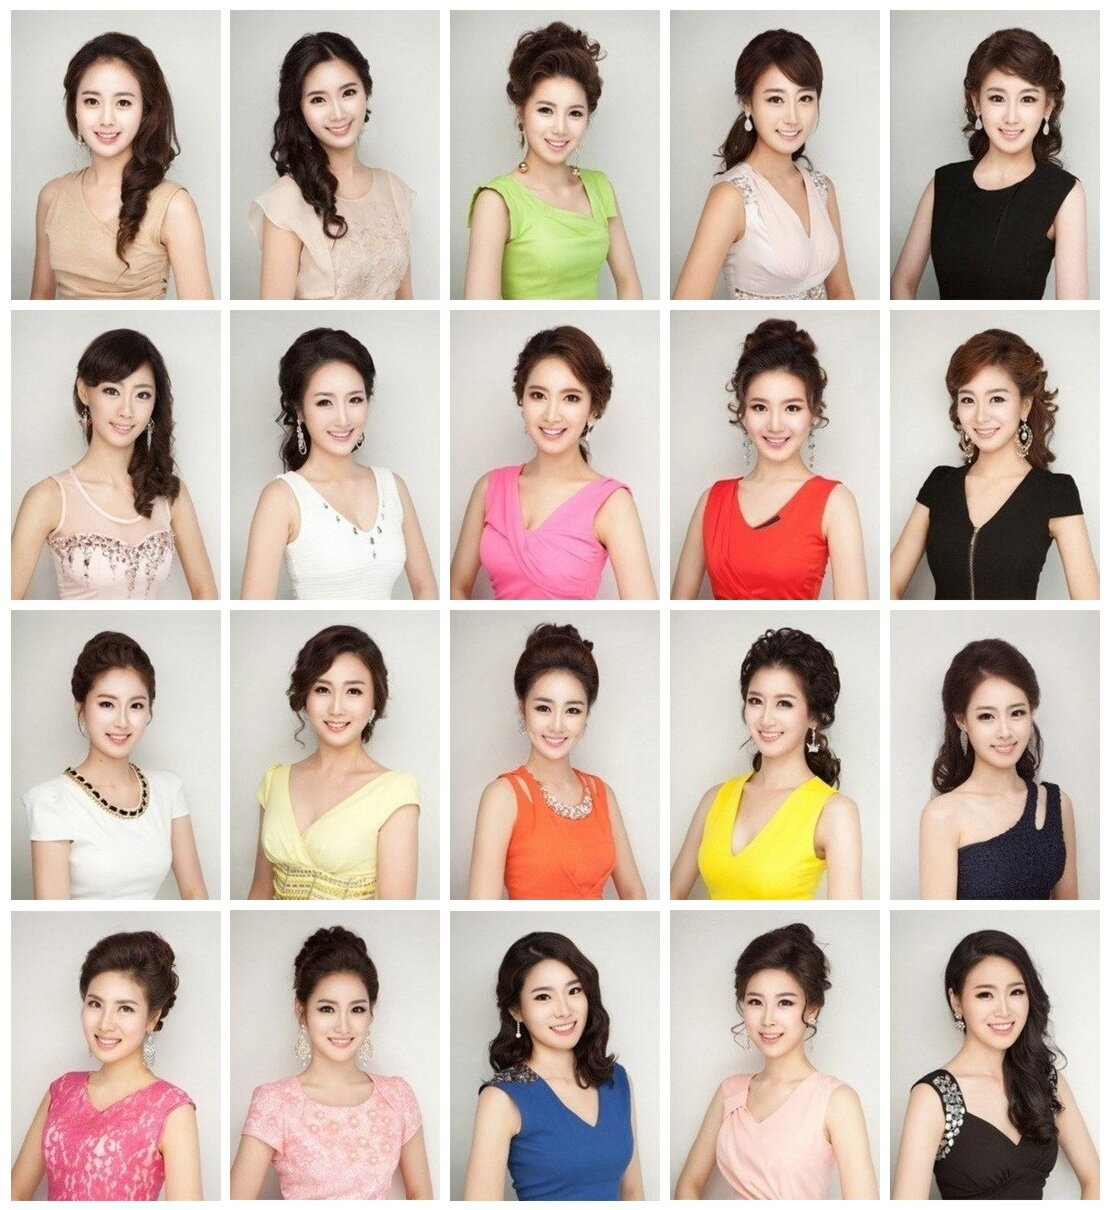 Koreas Plastic Surgery Obsession Revealed At Miss Korea 2013.